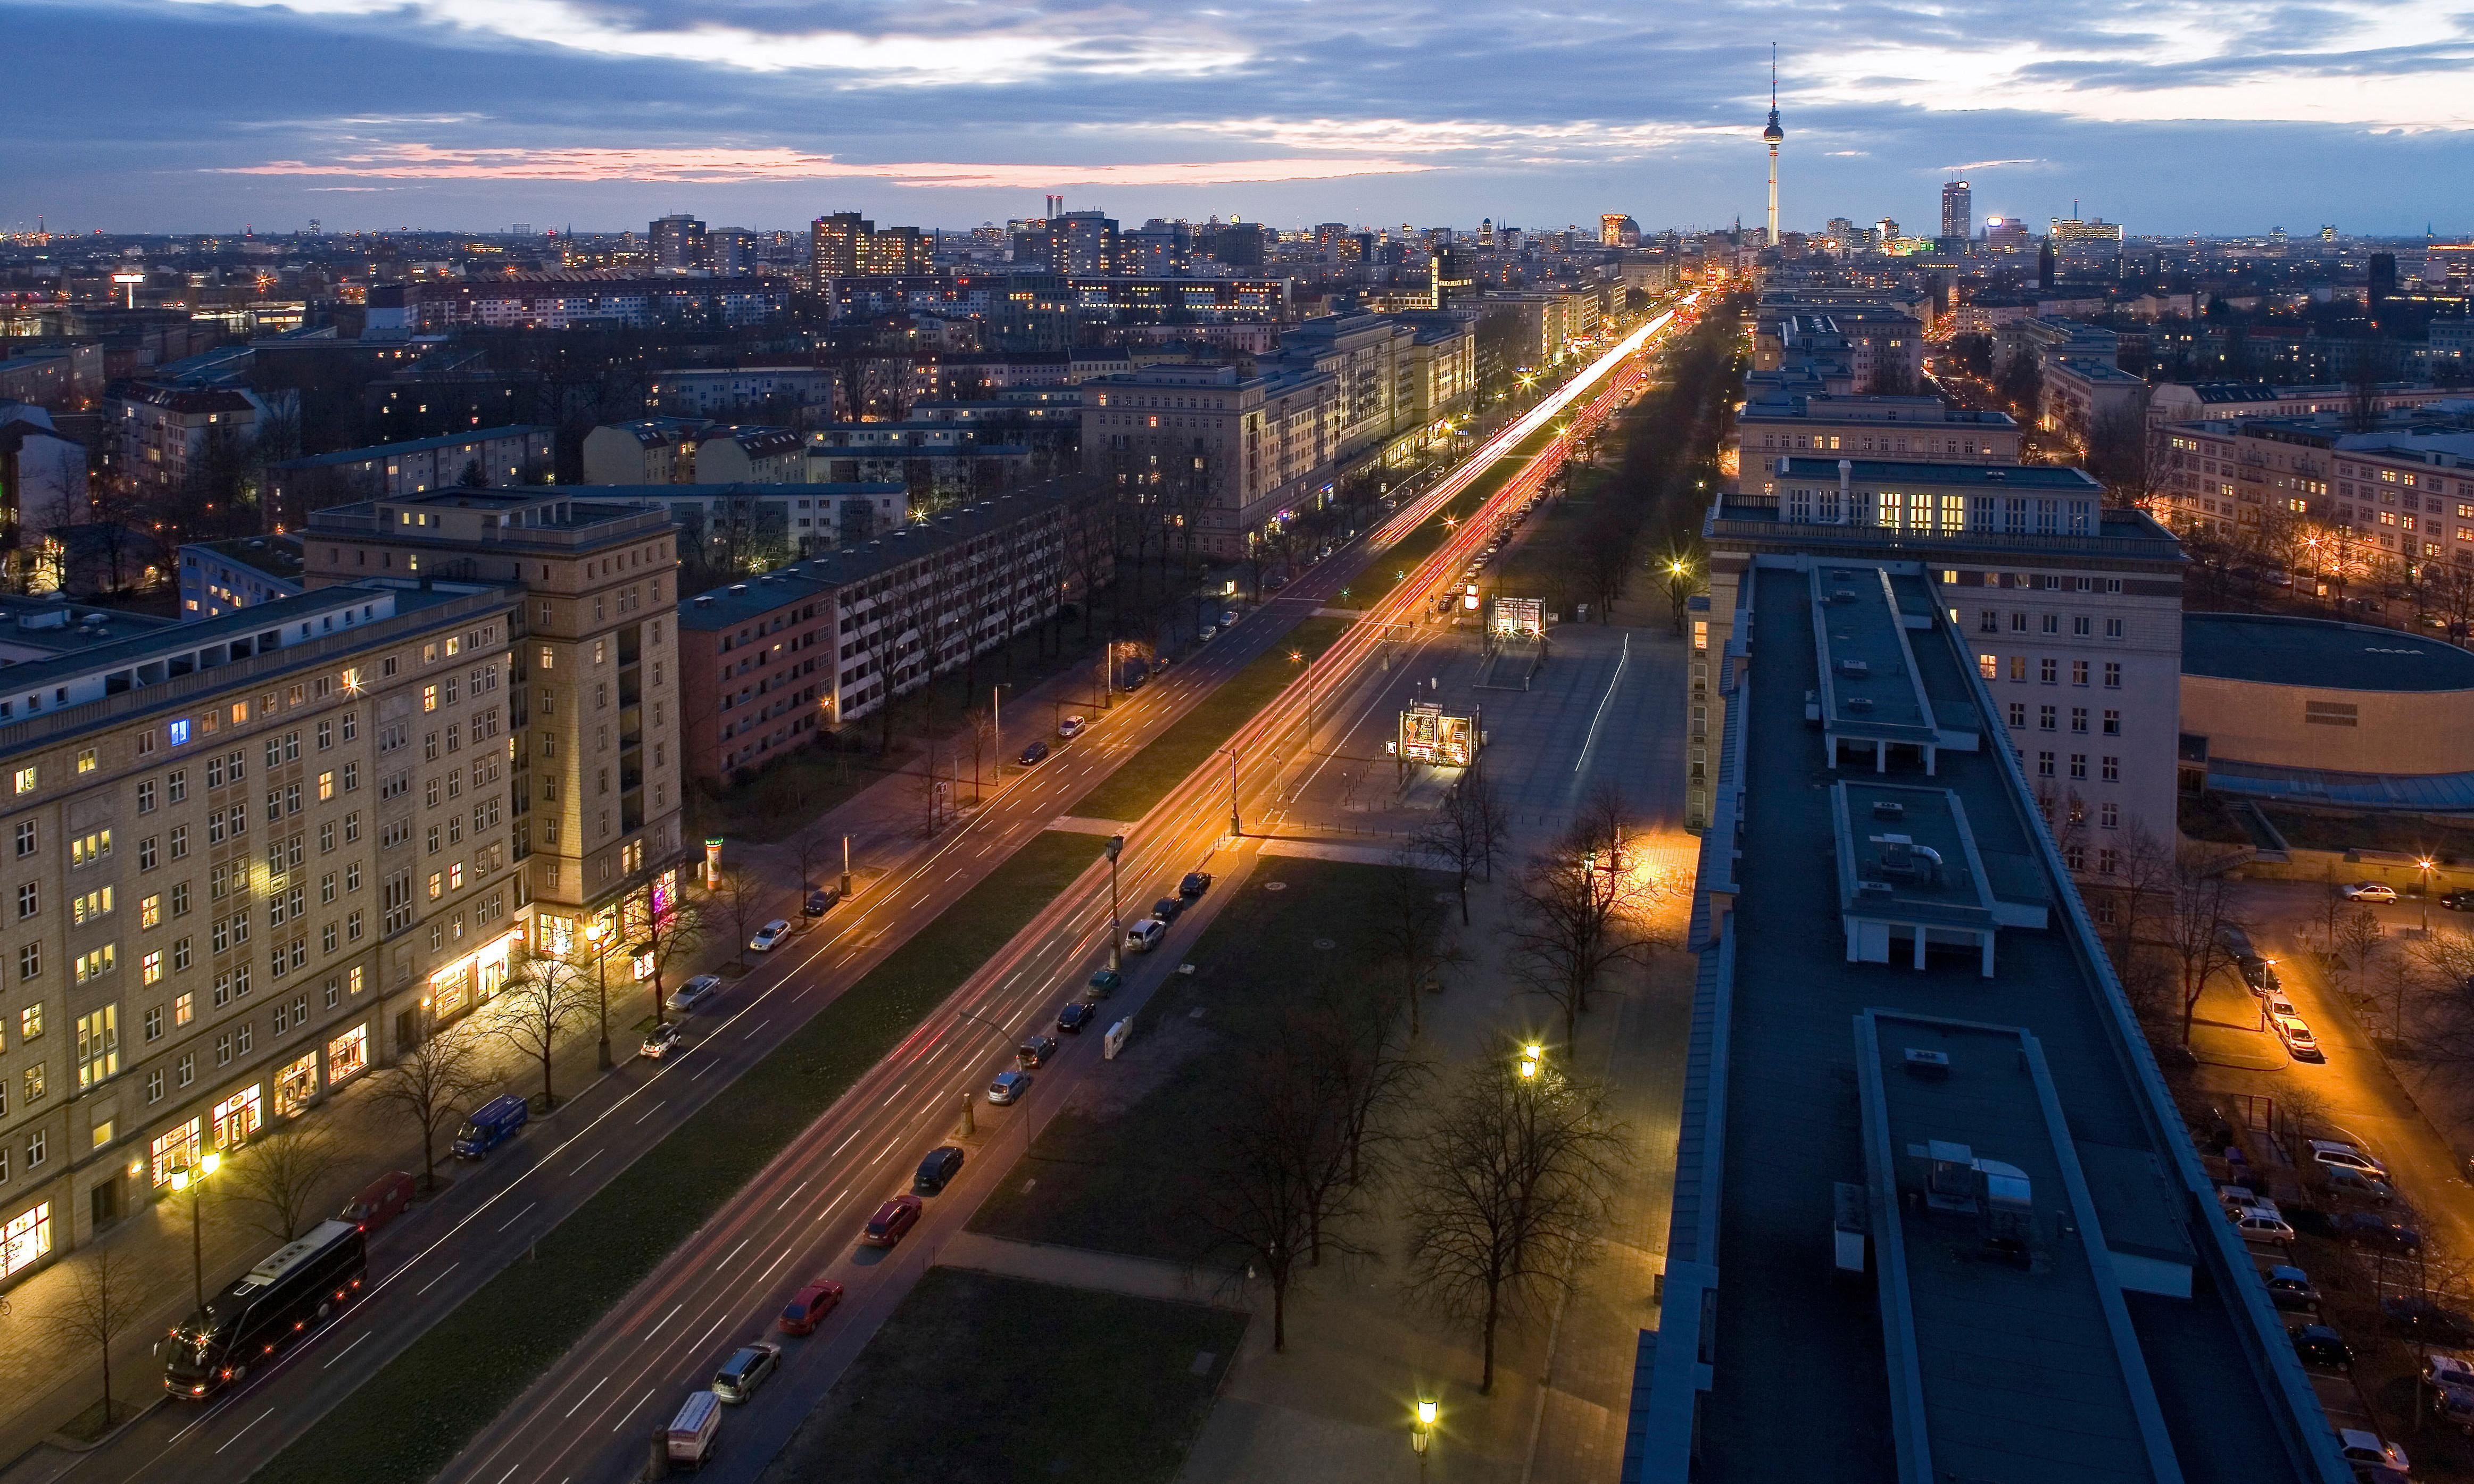 Berlin buys 670 flats on Karl-Marx-Allee from private owner